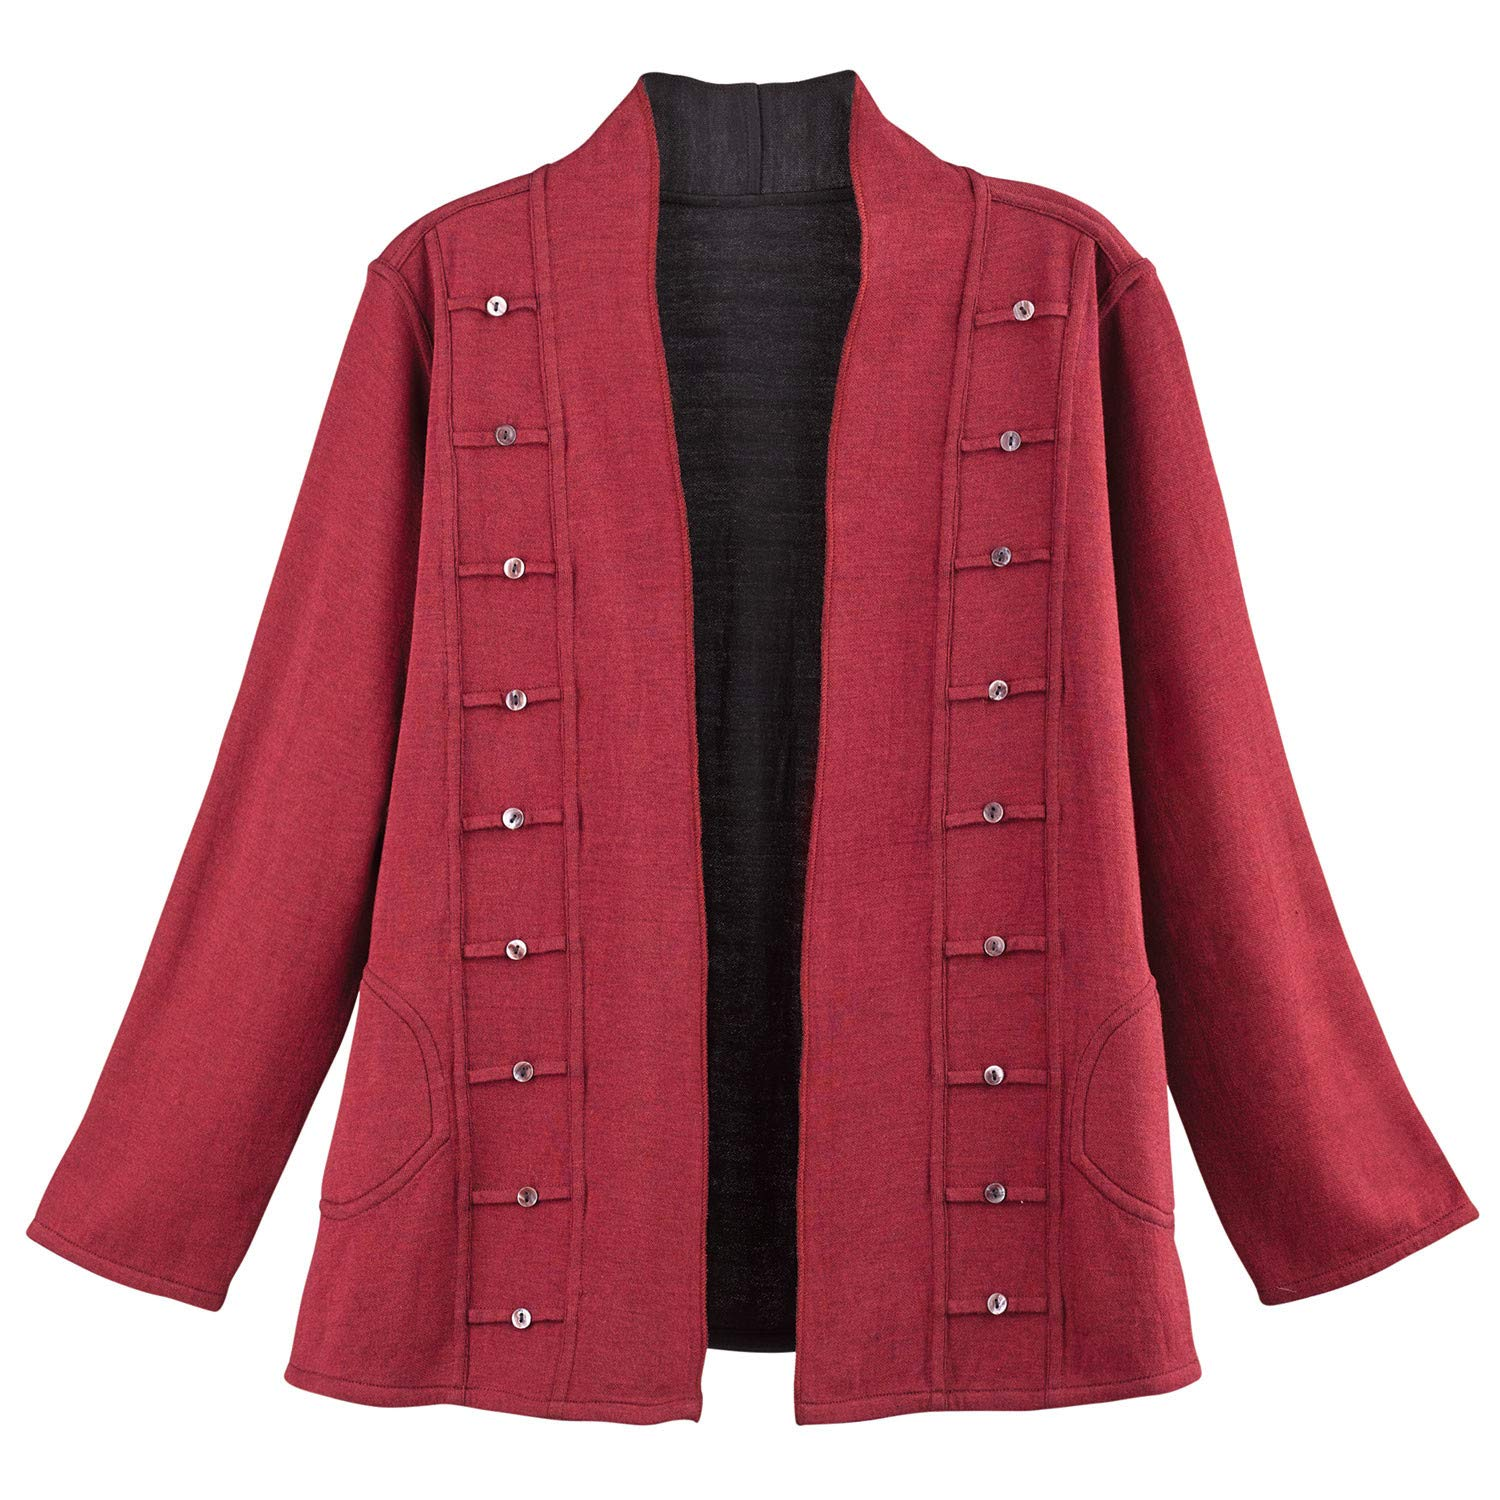 Parsley & Sage Women's Reversible Open-Front Jacket - Military-Style Coat